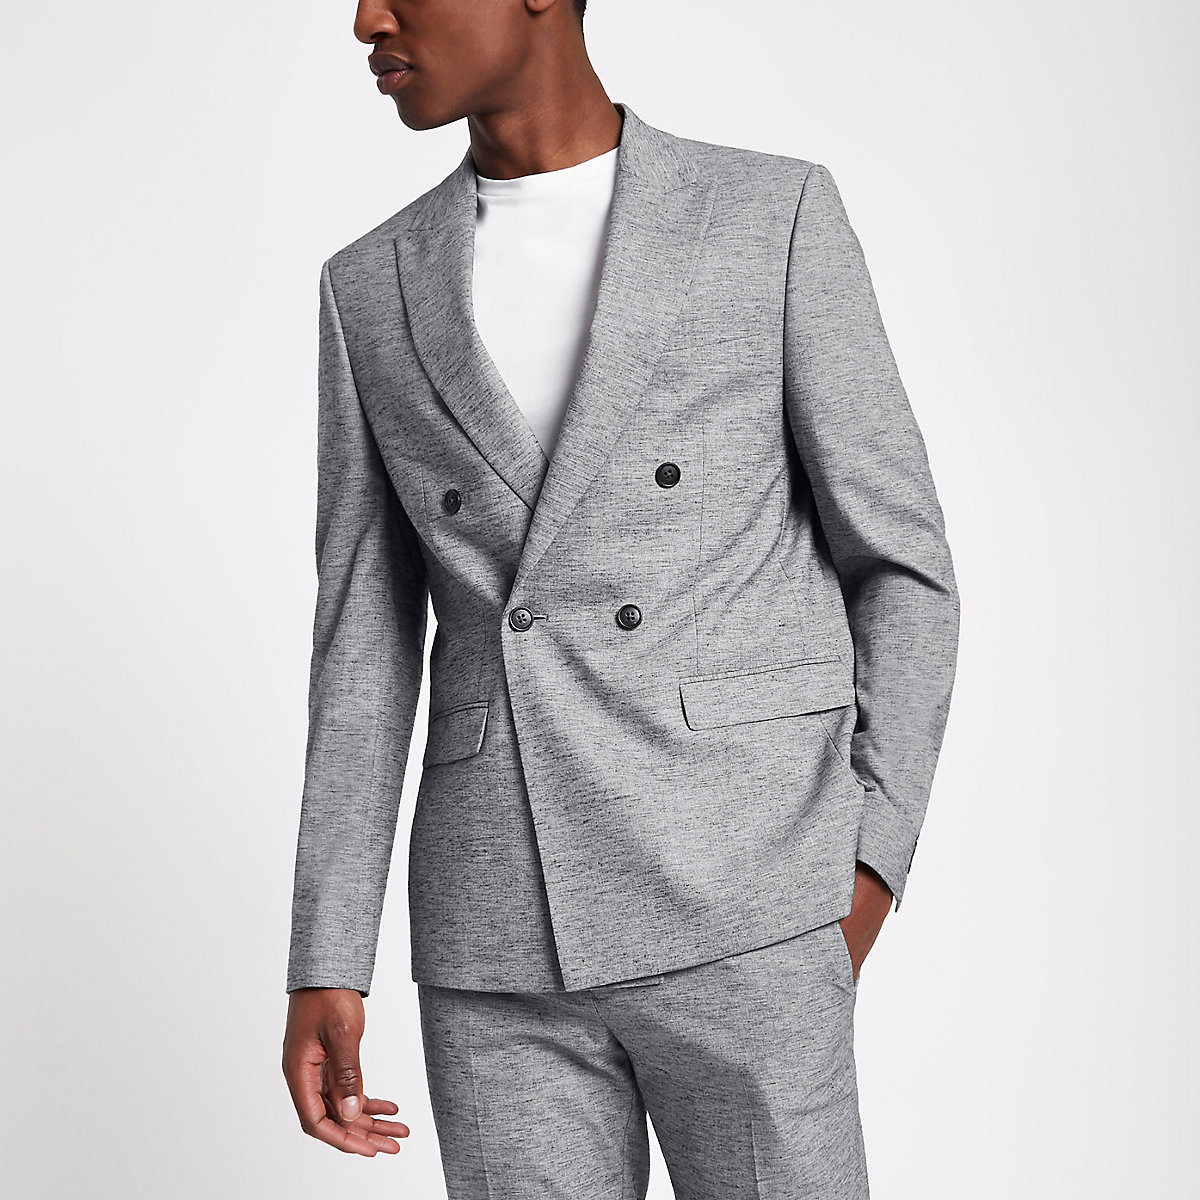 Light grey double breasted suit jacket